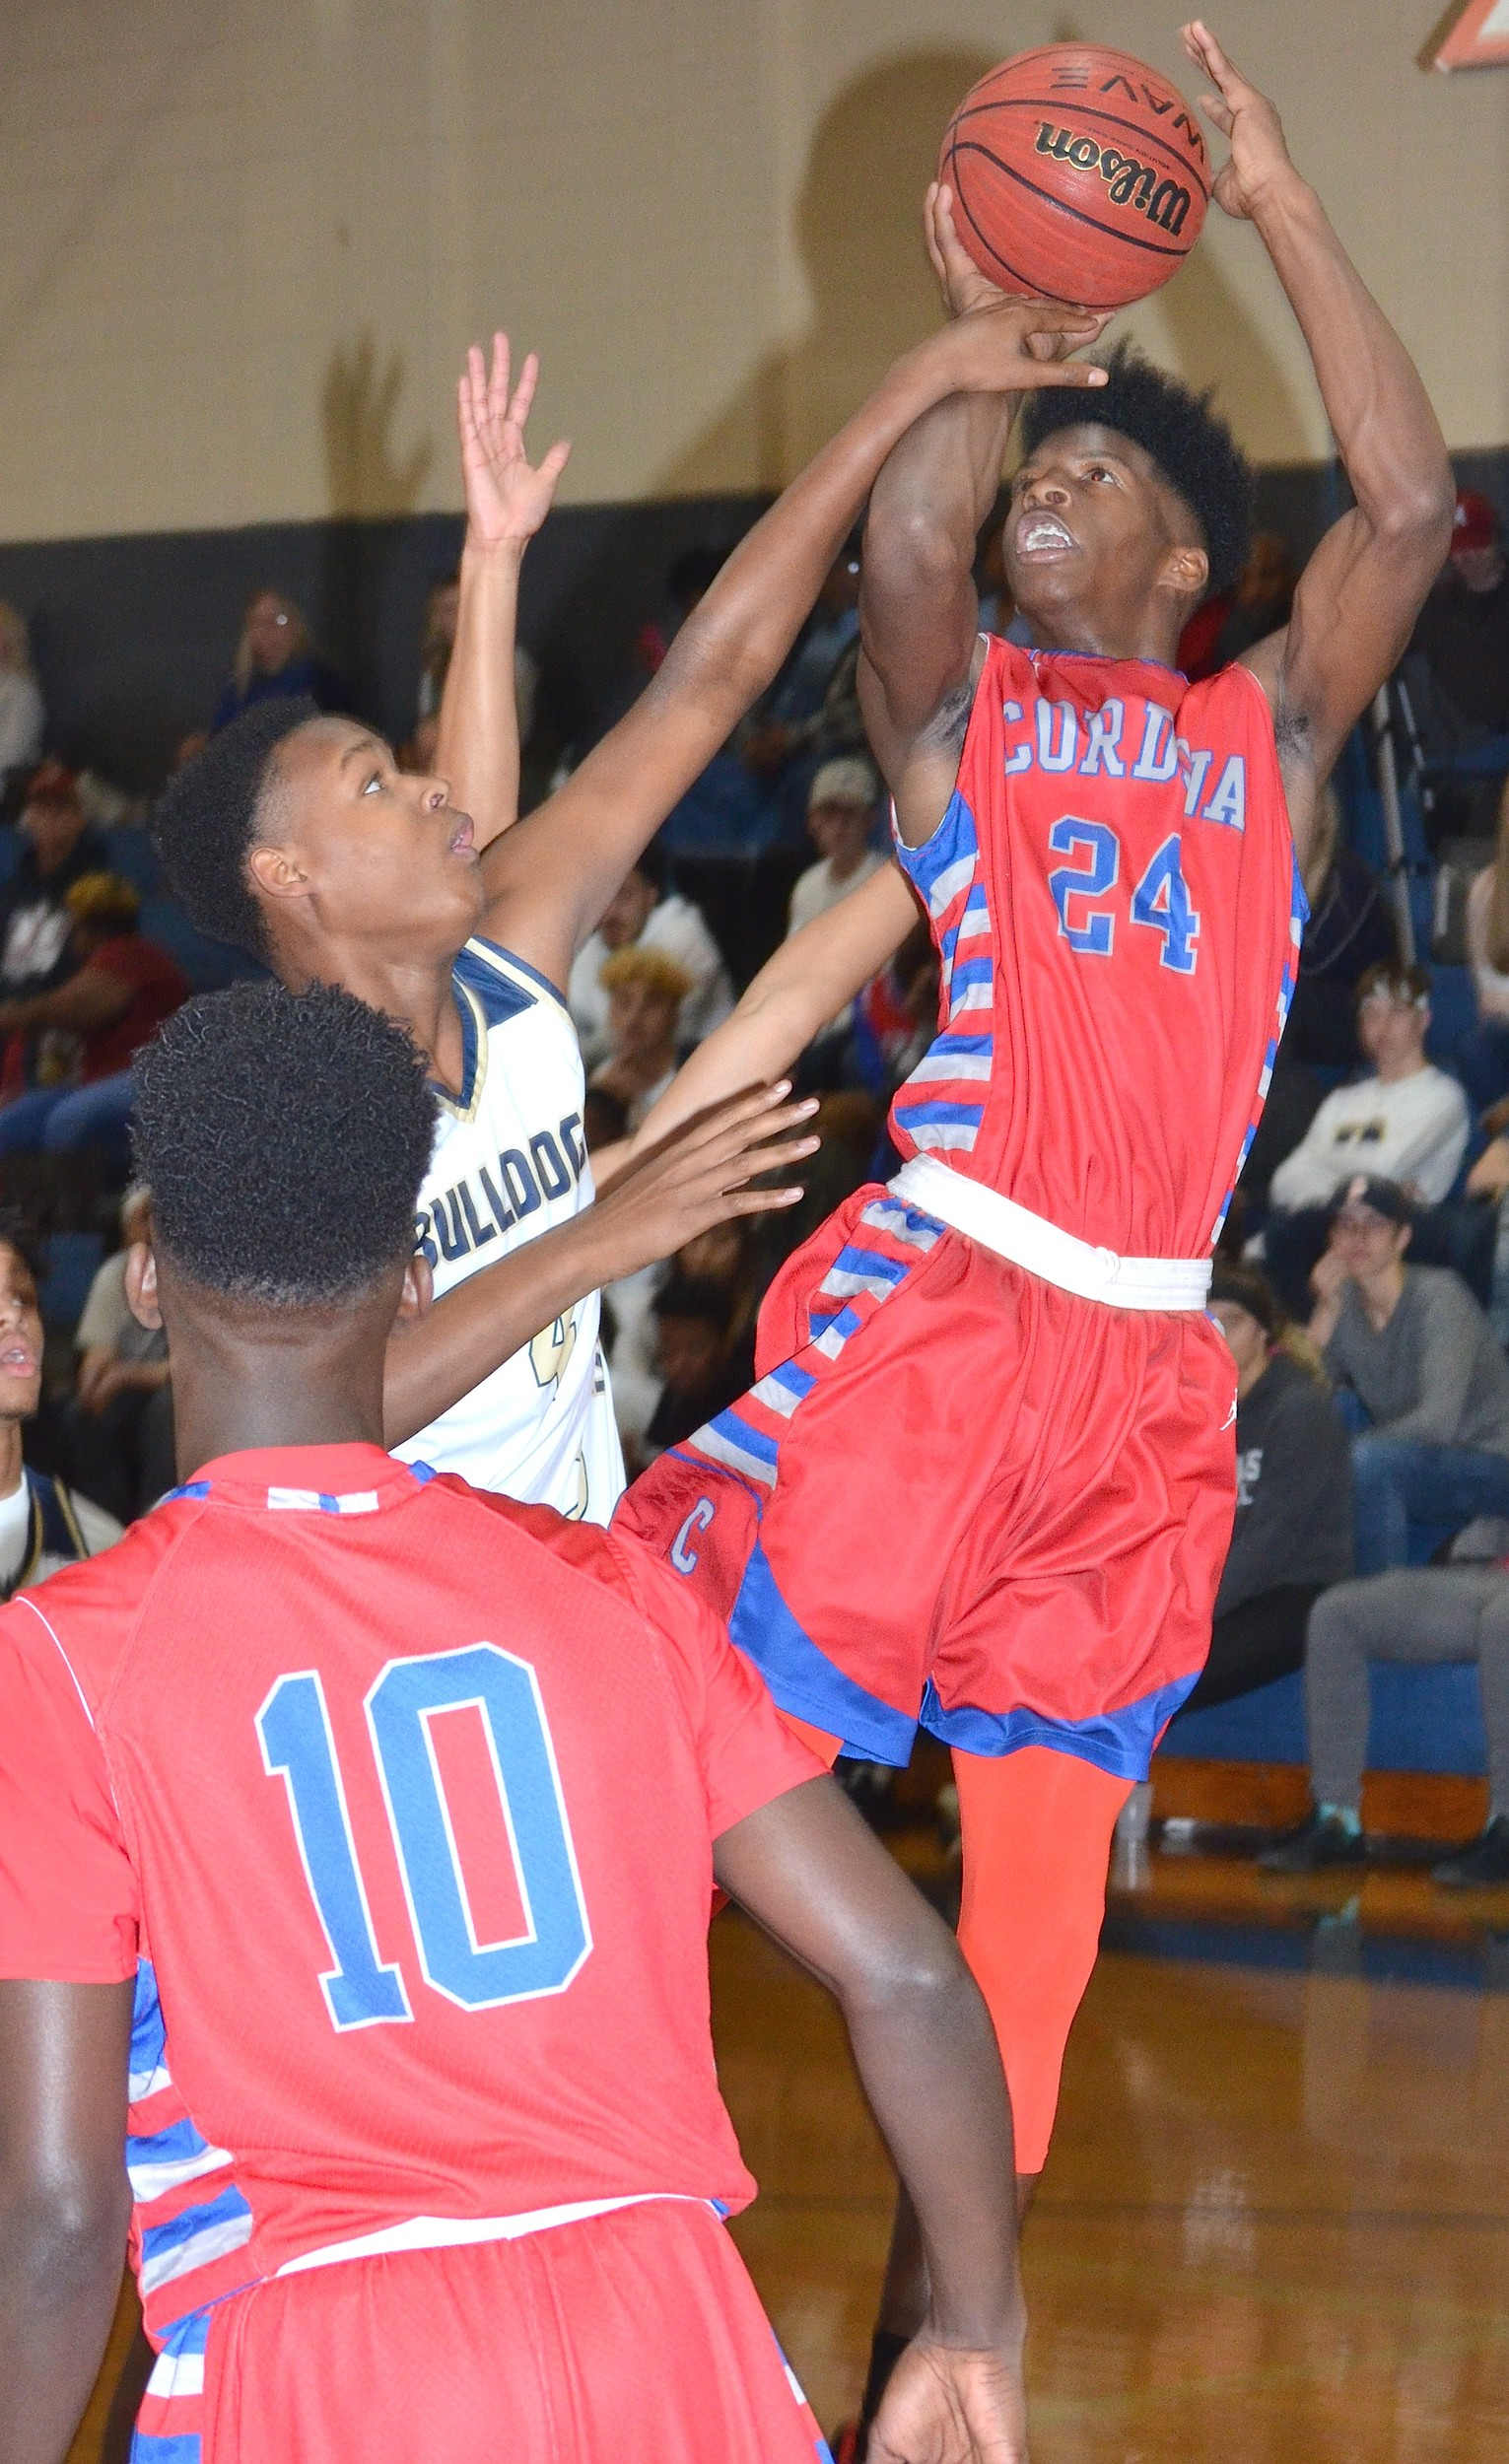 Cordova's Isaac Chatman (24) shoots a jumper against Dora during their game on Tuesday night. Chatman had 27 points and 16 rebounds in the Blue Devils' 68-49 win.